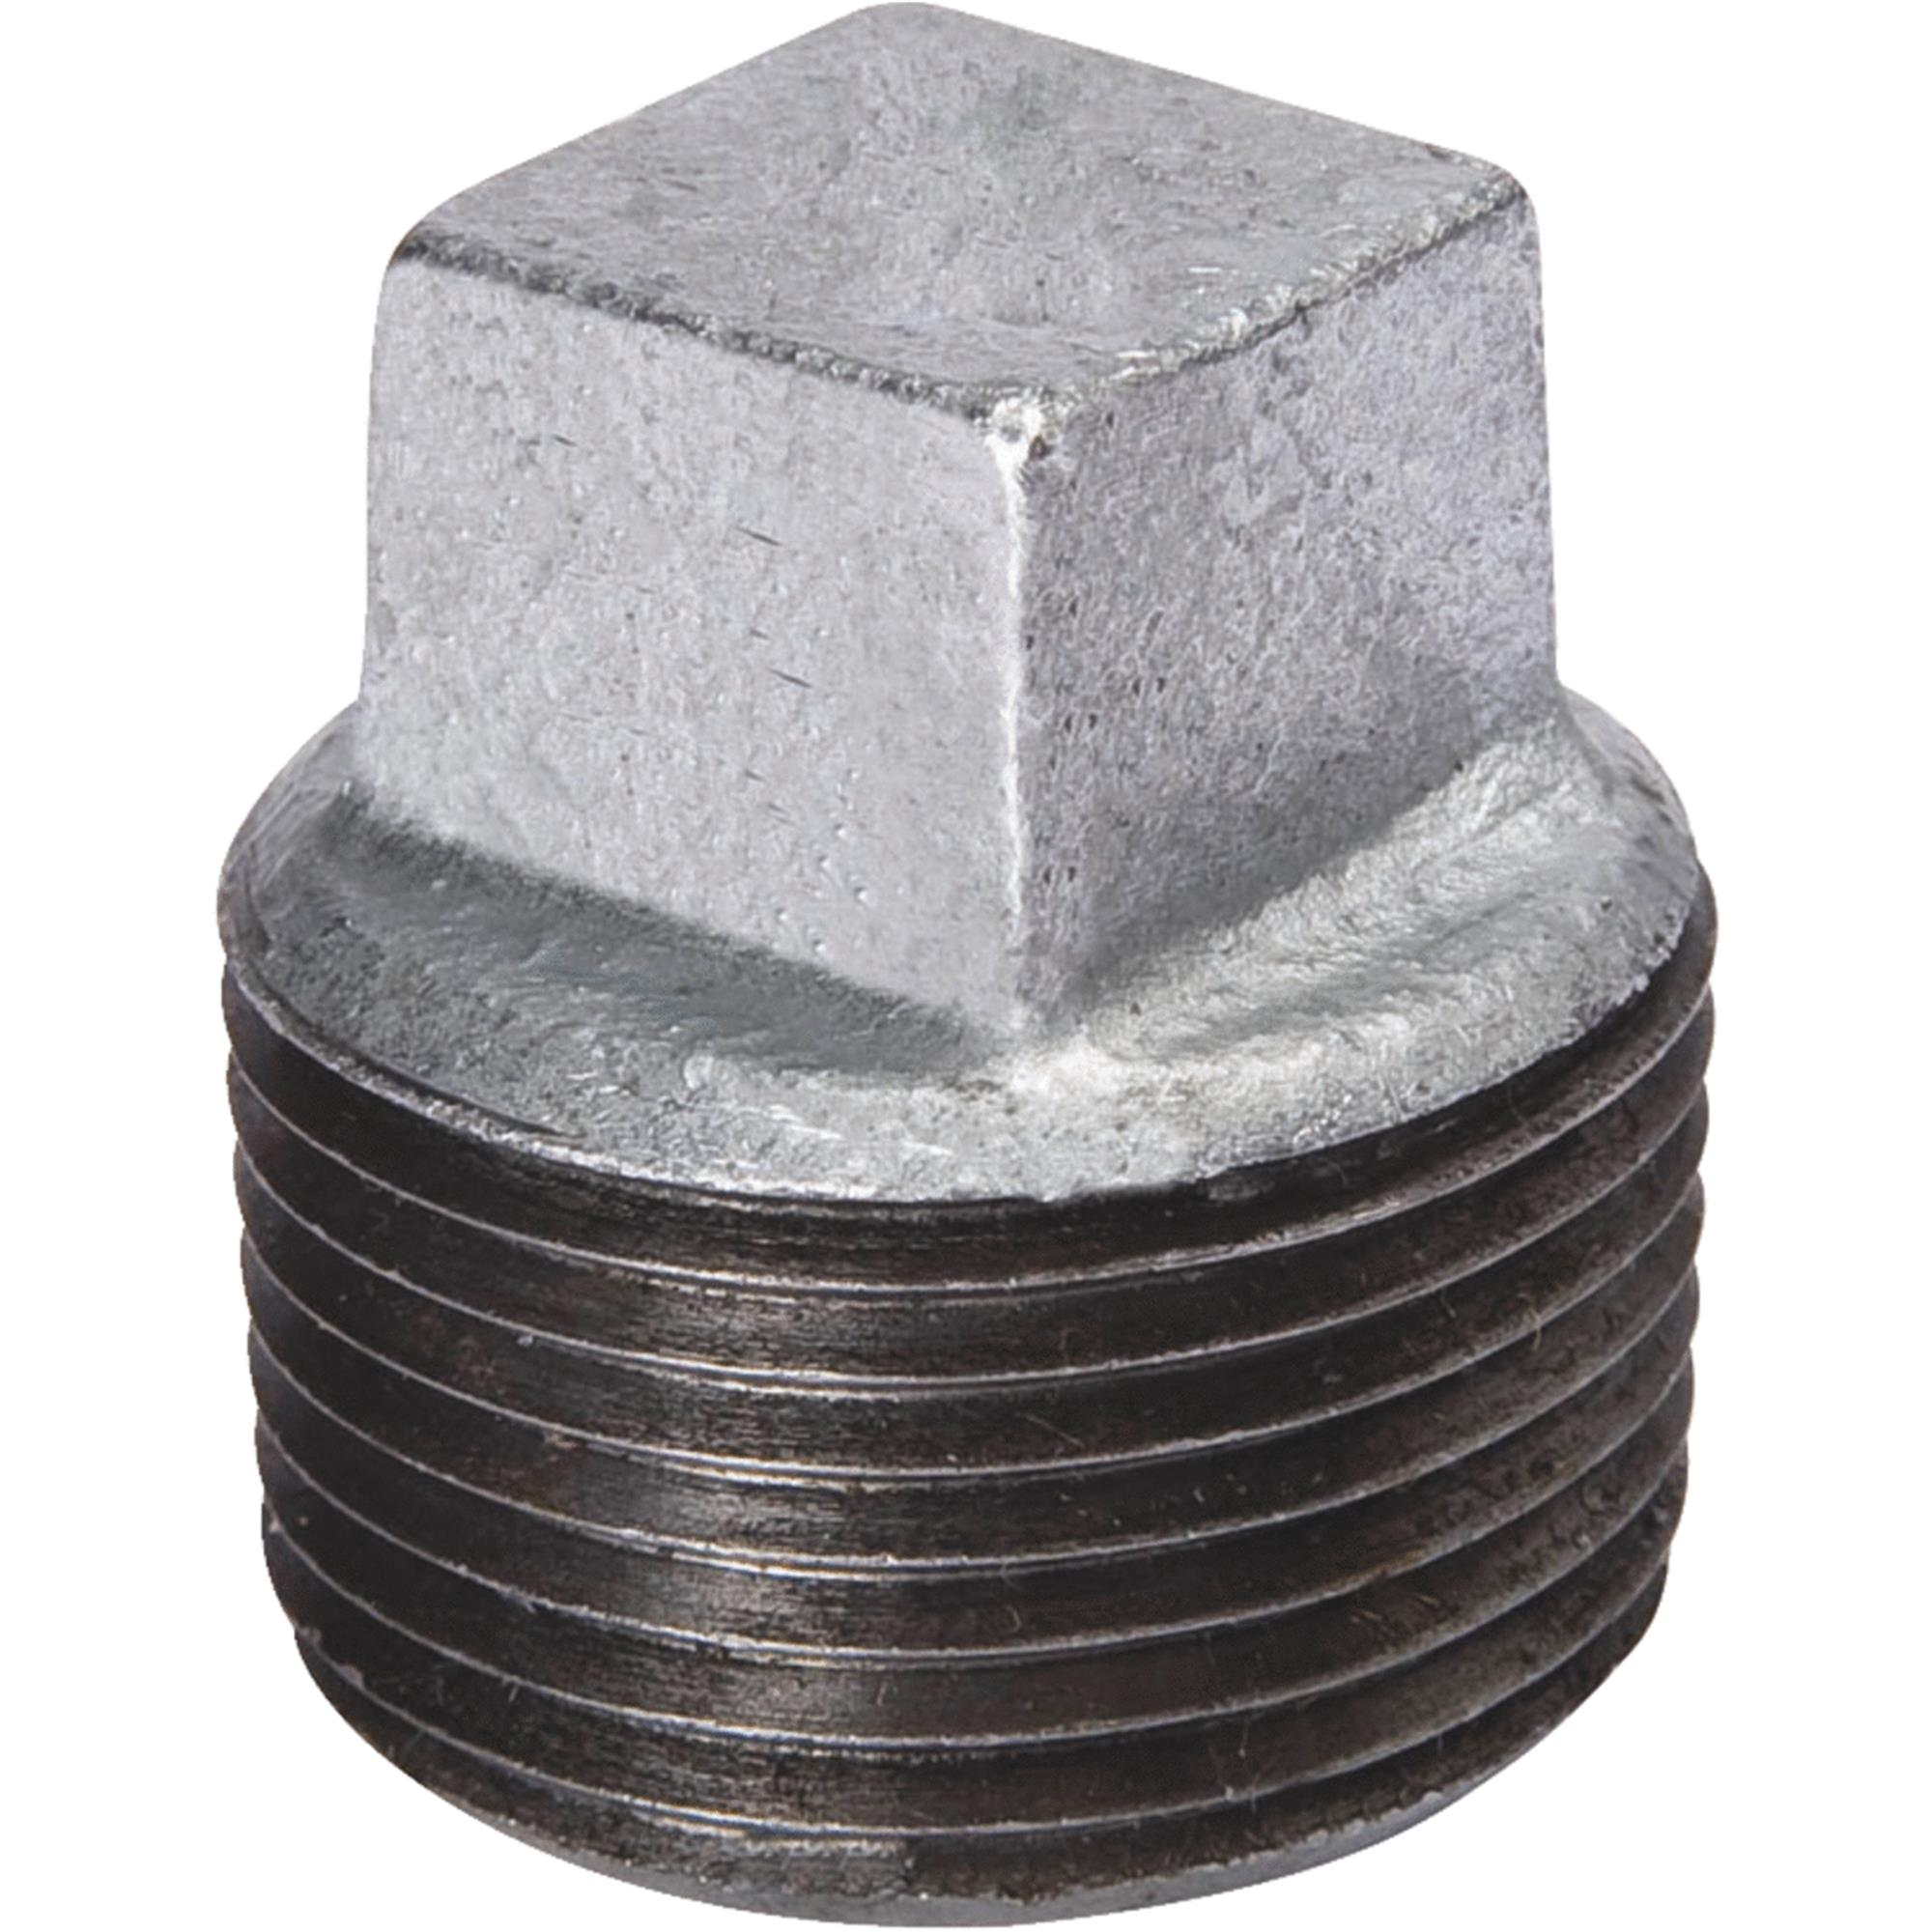 Galvanized Pipe Plug